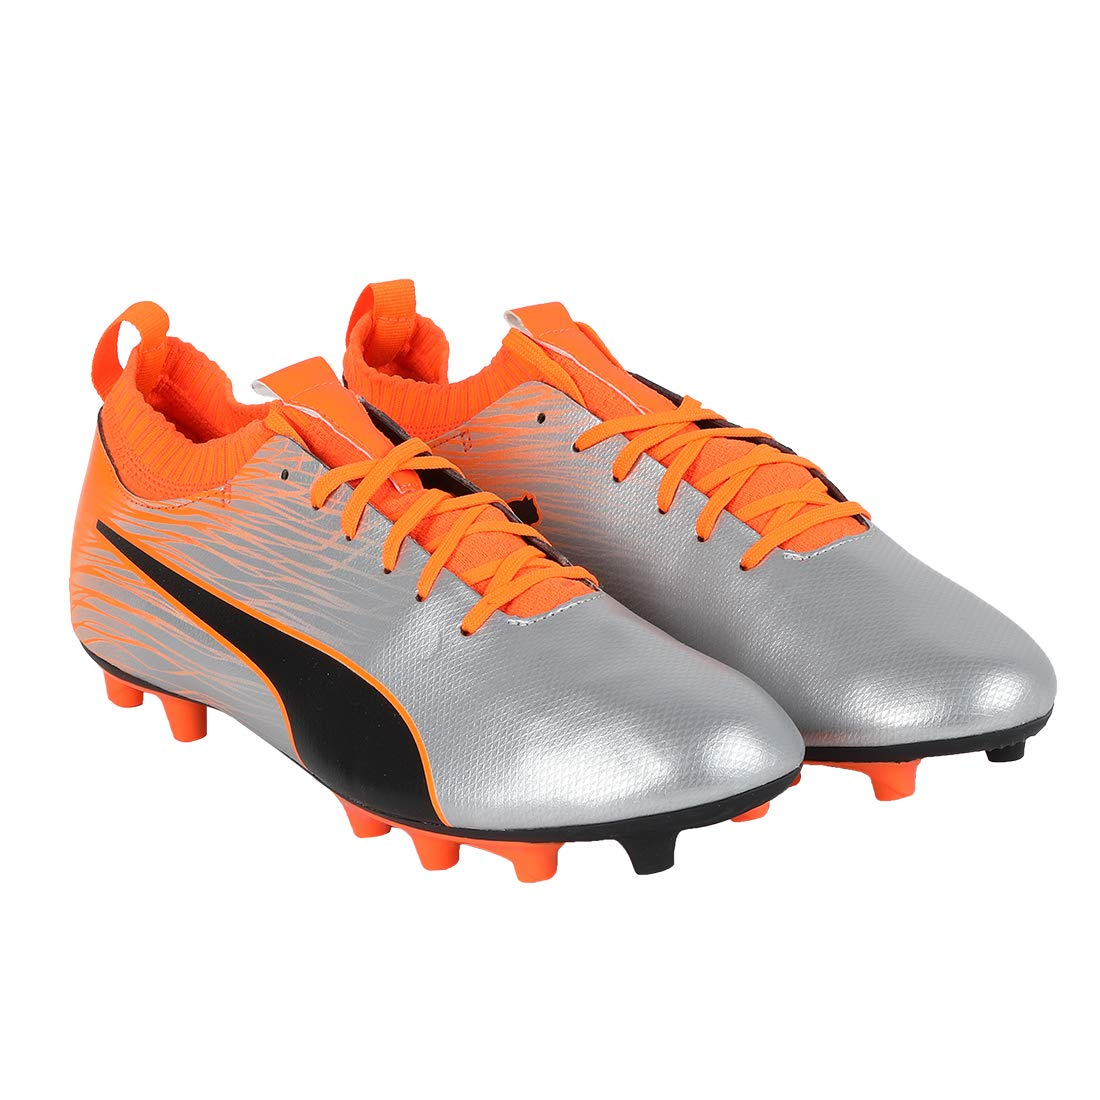 pume football shoes for kids